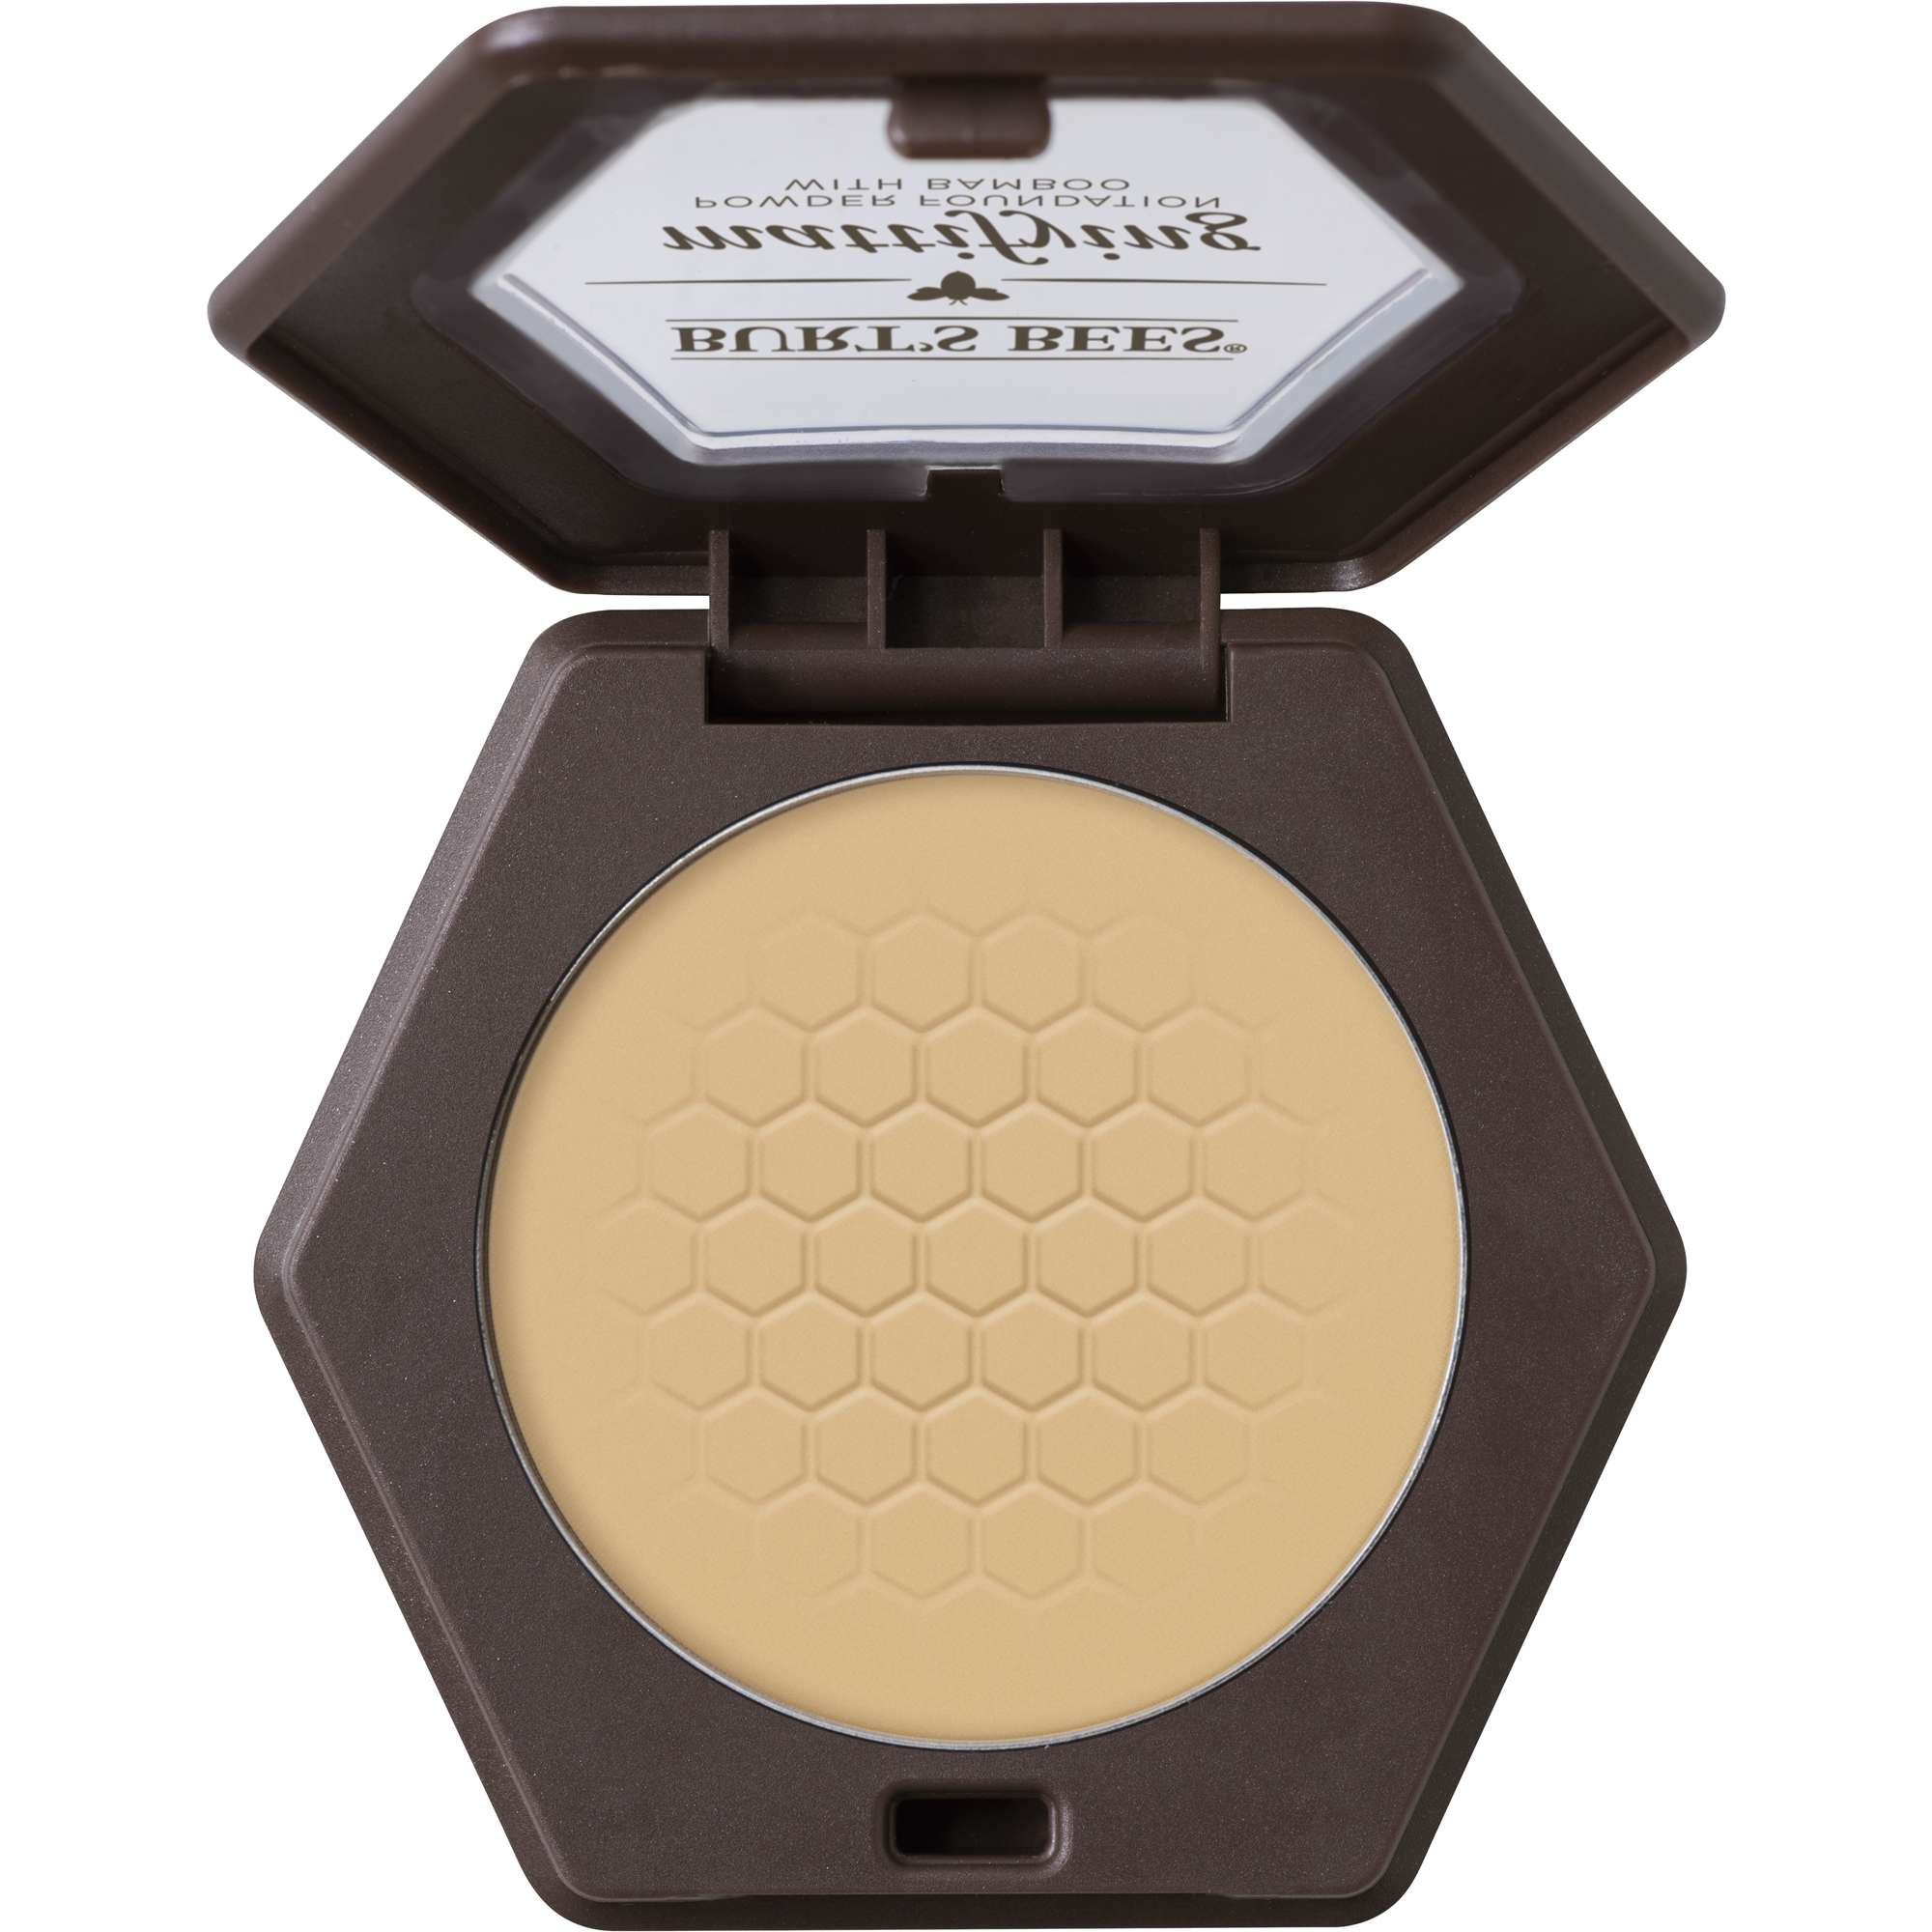 Burt's Bees 100% Natural Mattifying Powder Foundation, Vanilla, 0.3 oz